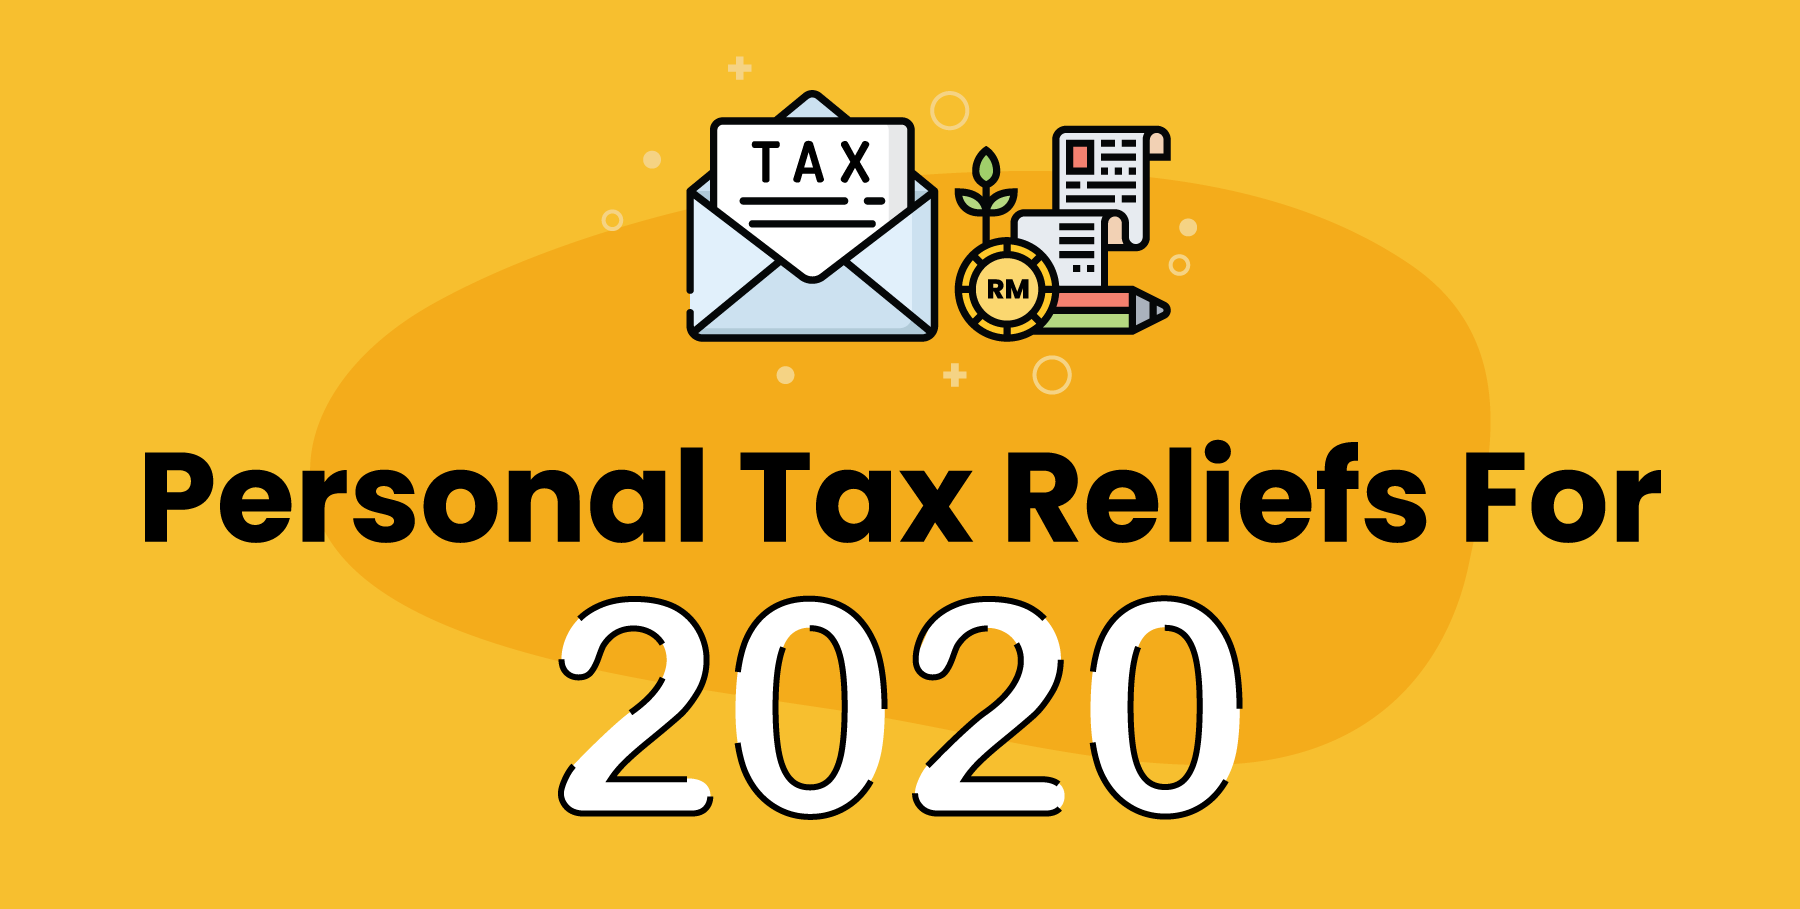 Personal Tax Reliefs For 2020 9 - Multiply - Planning & Budgeting